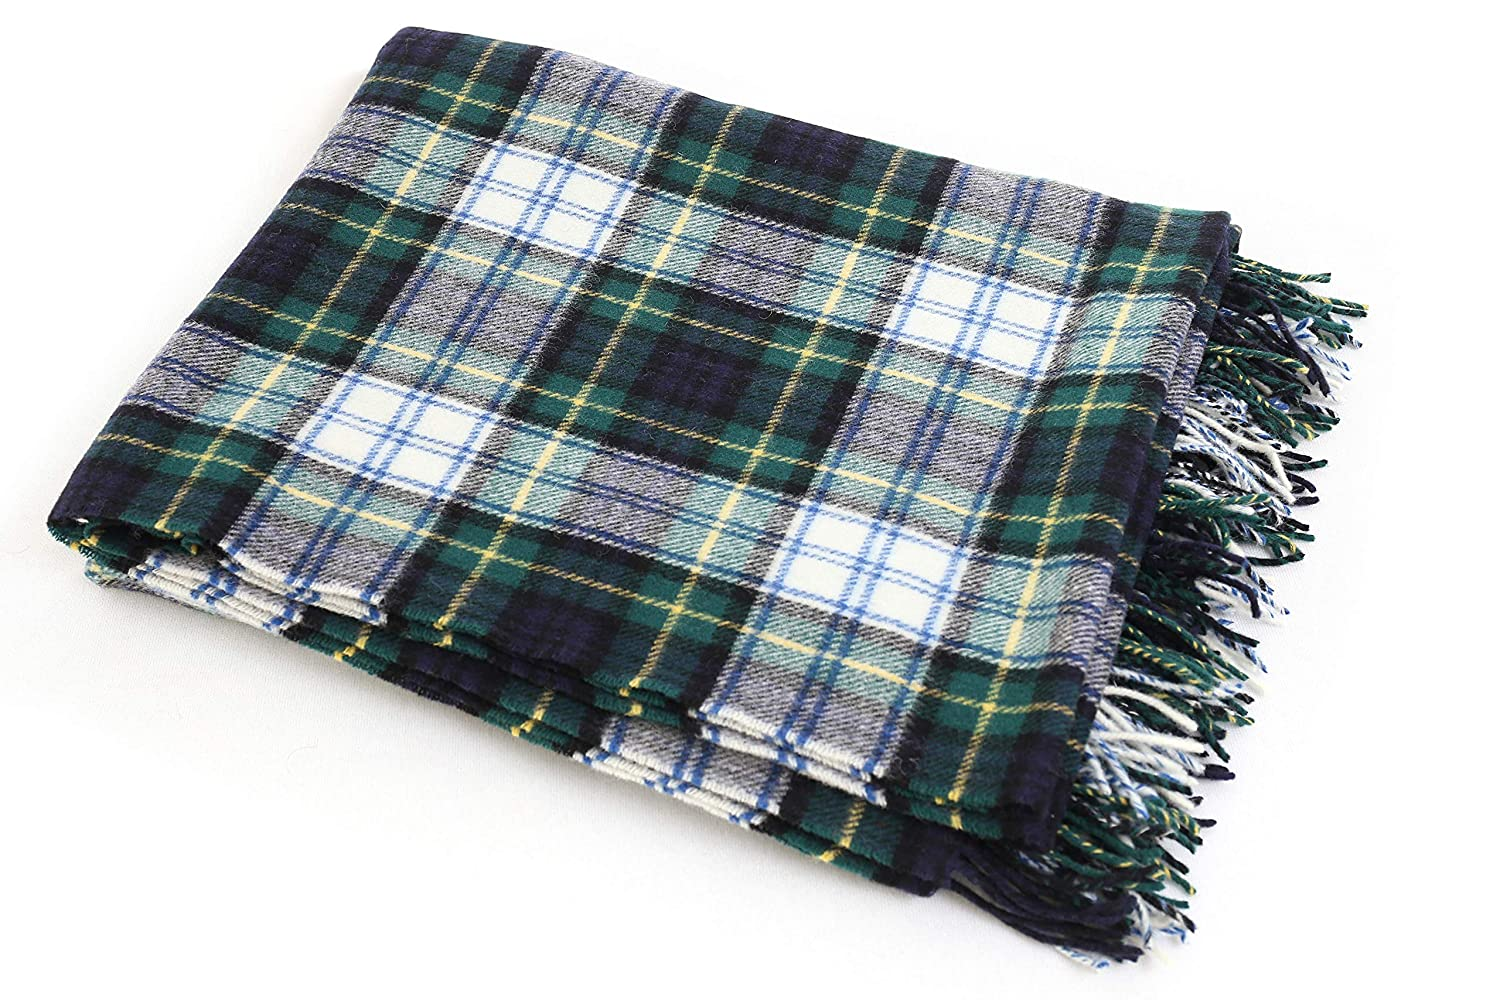 John Hanly Irish Throw Blanket 100/% Lambswool 54 Wide x 71 Long Fringed Soft Warm Irish Gift Home Made in Ireland Green//White Plaid